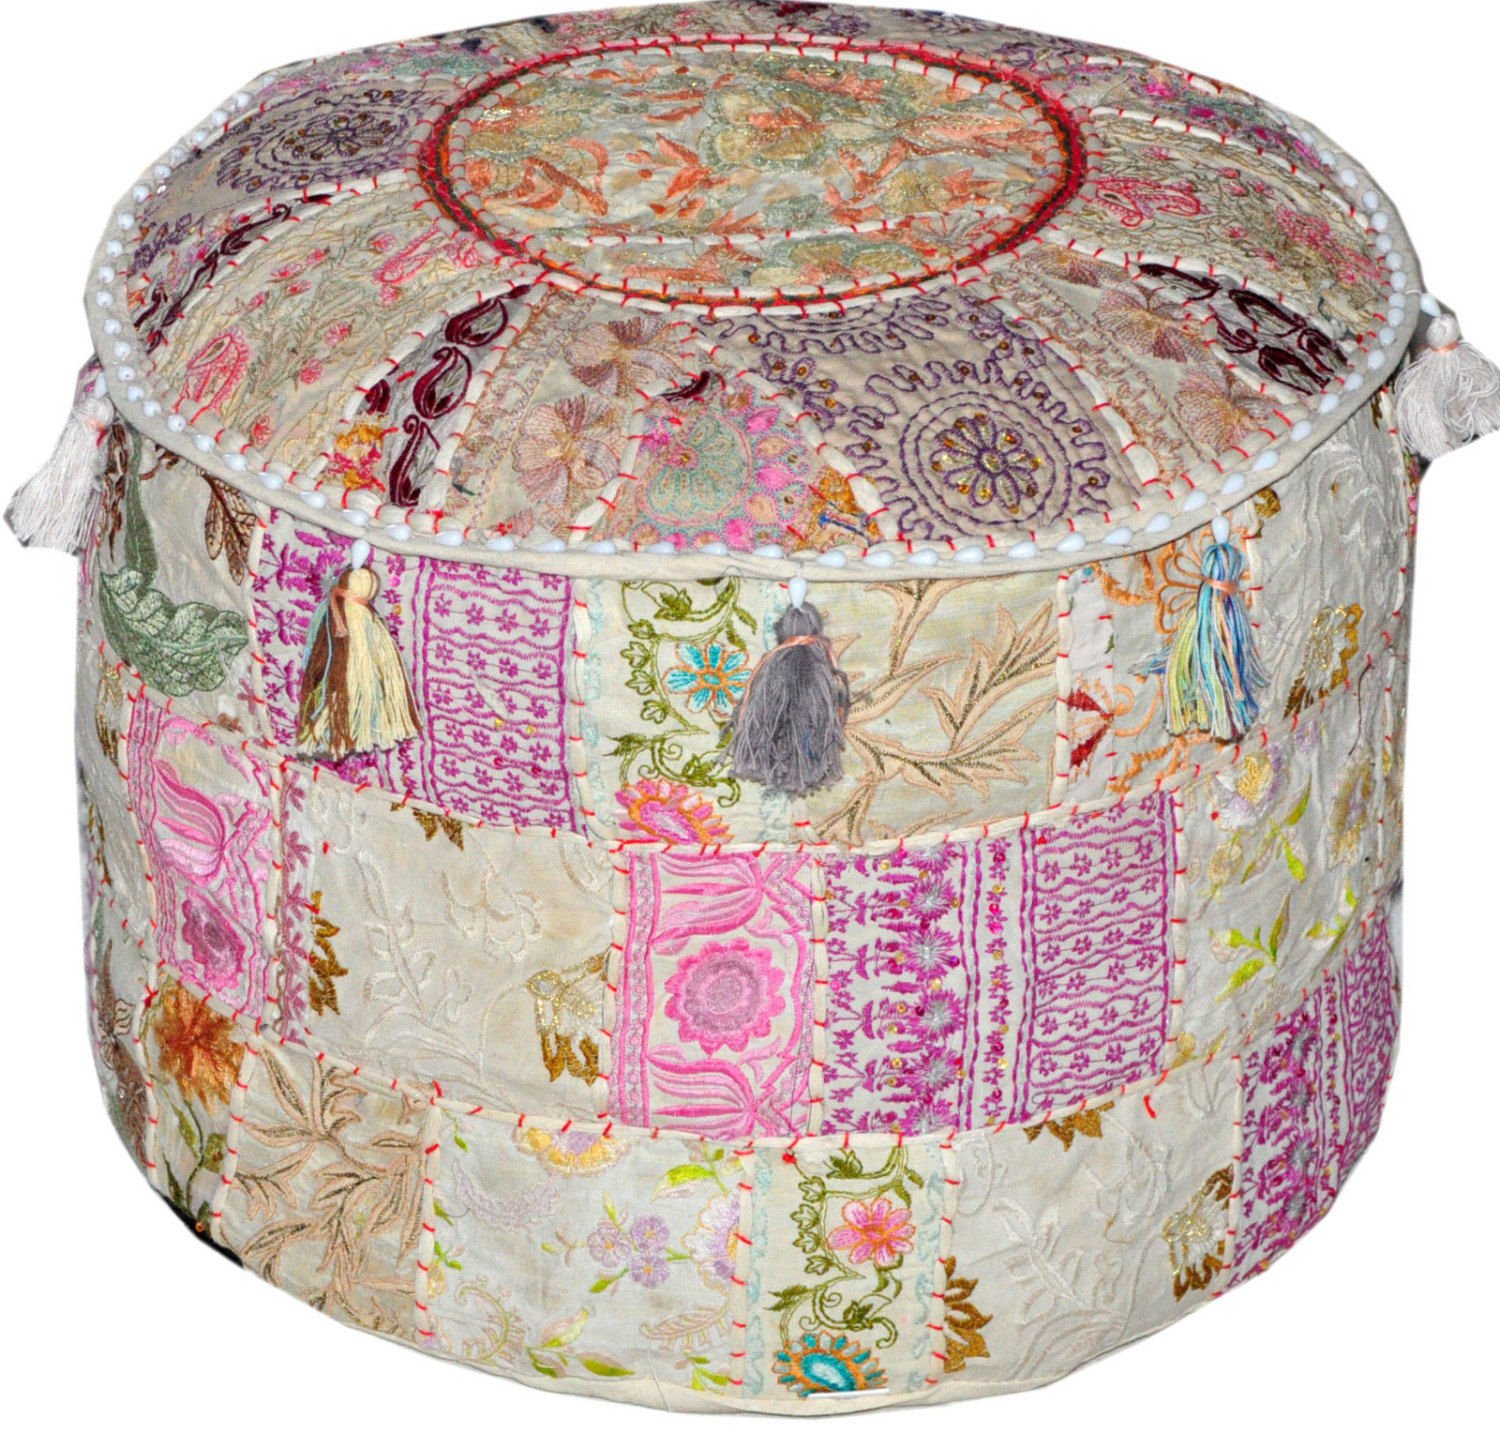 khushvin Handmade Pouf Indian Patchwork Foot stool Ottoman 22x14 Bohemian Indian Patchwork Ottoman White Vintage Sari Patchwork Ottoman Traditional Ottoman